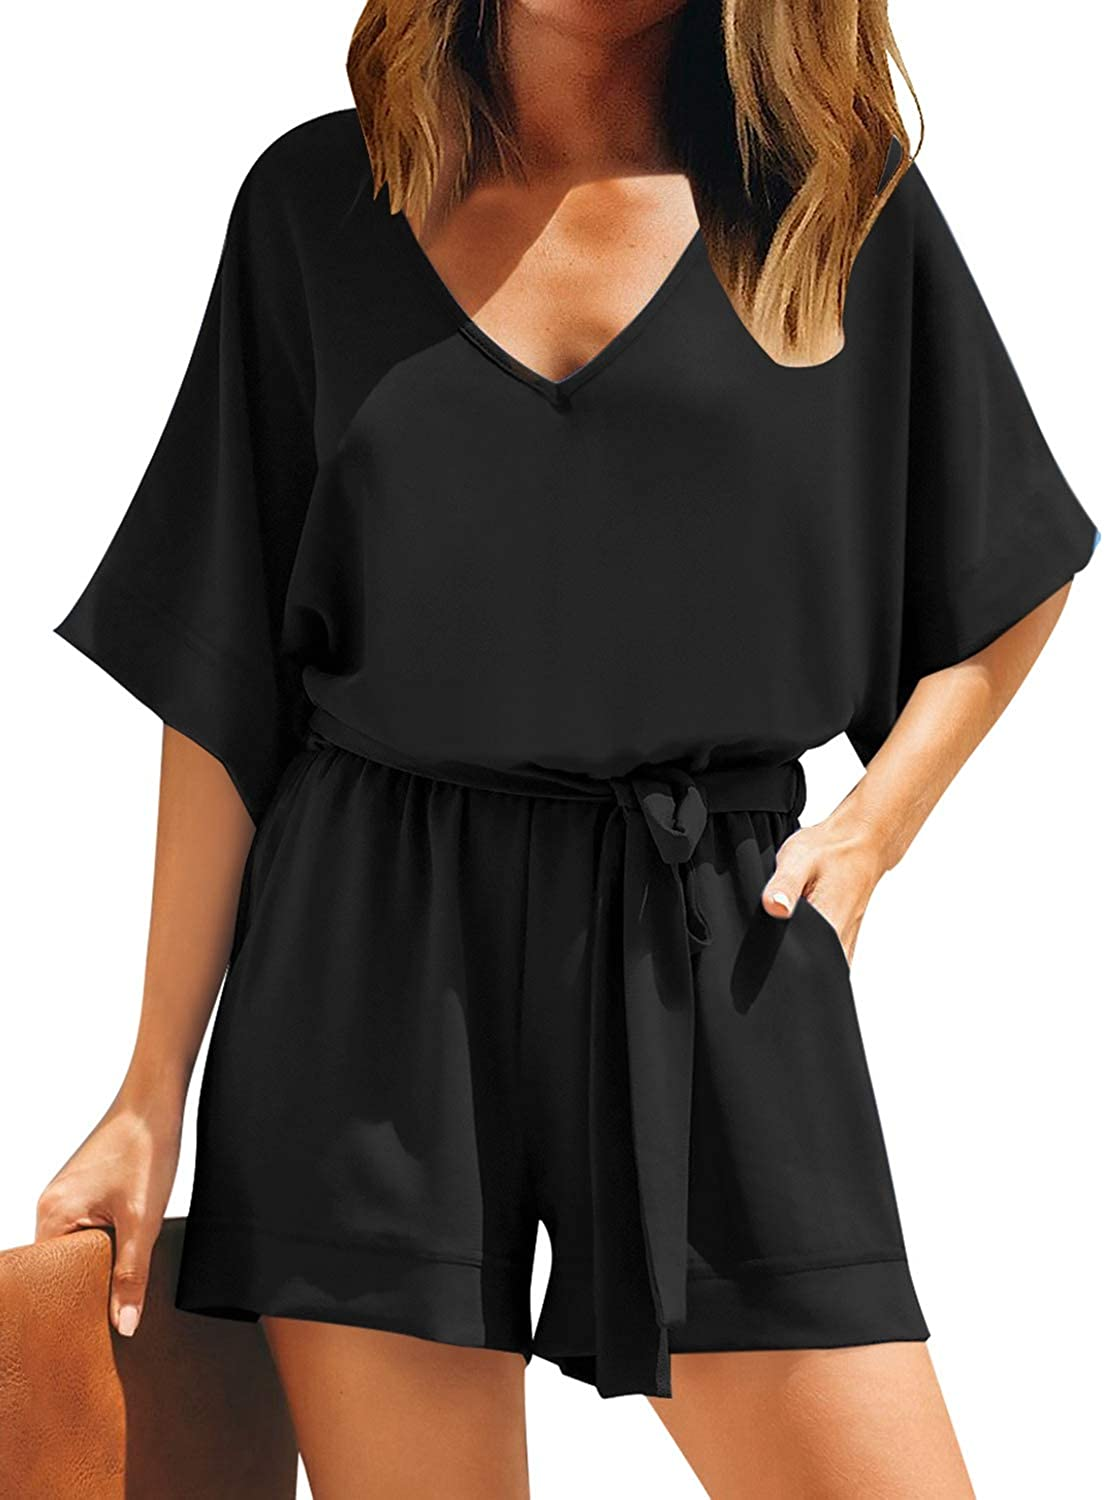 LookbookStore Women Mesh Panel Bell Sleeve Self-Tie Belted Short Romper Jumpsuits